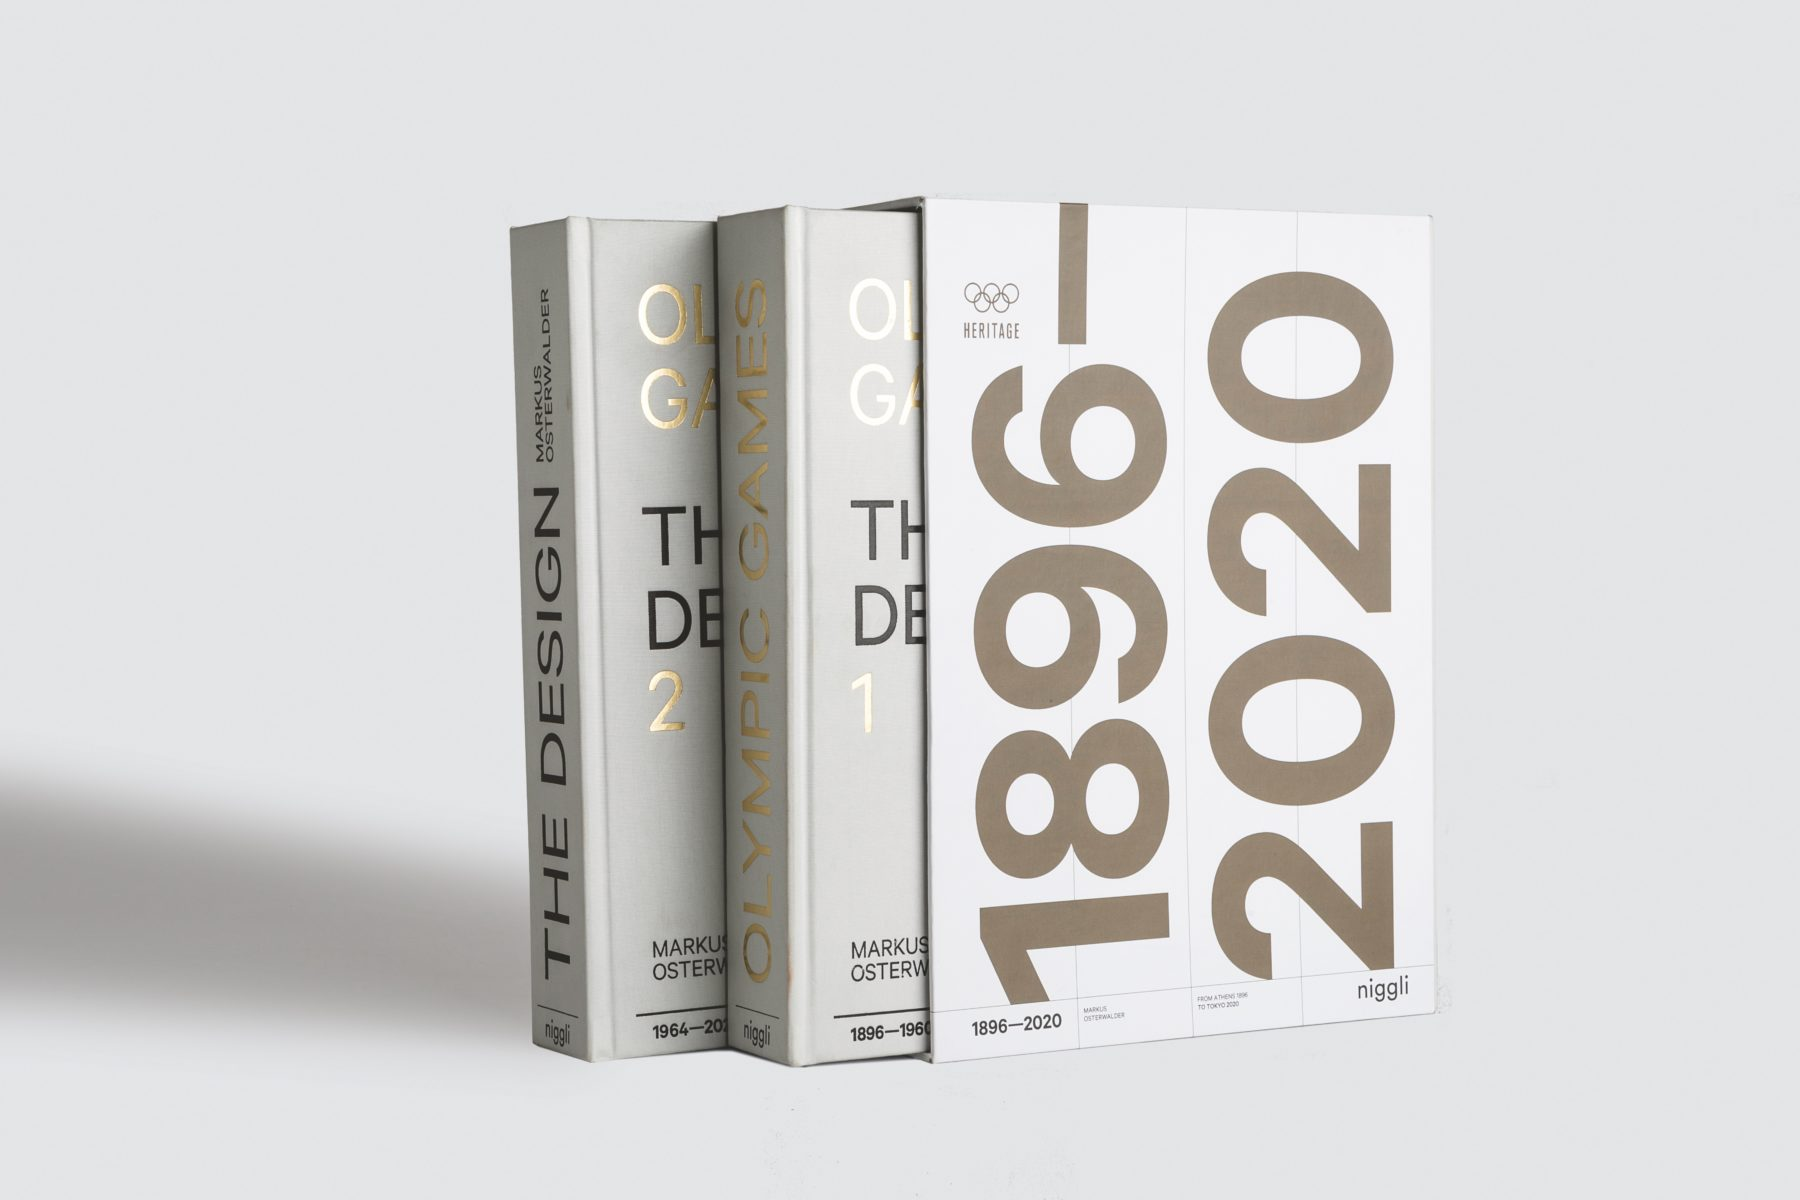 Olympic Games The Design IER1479